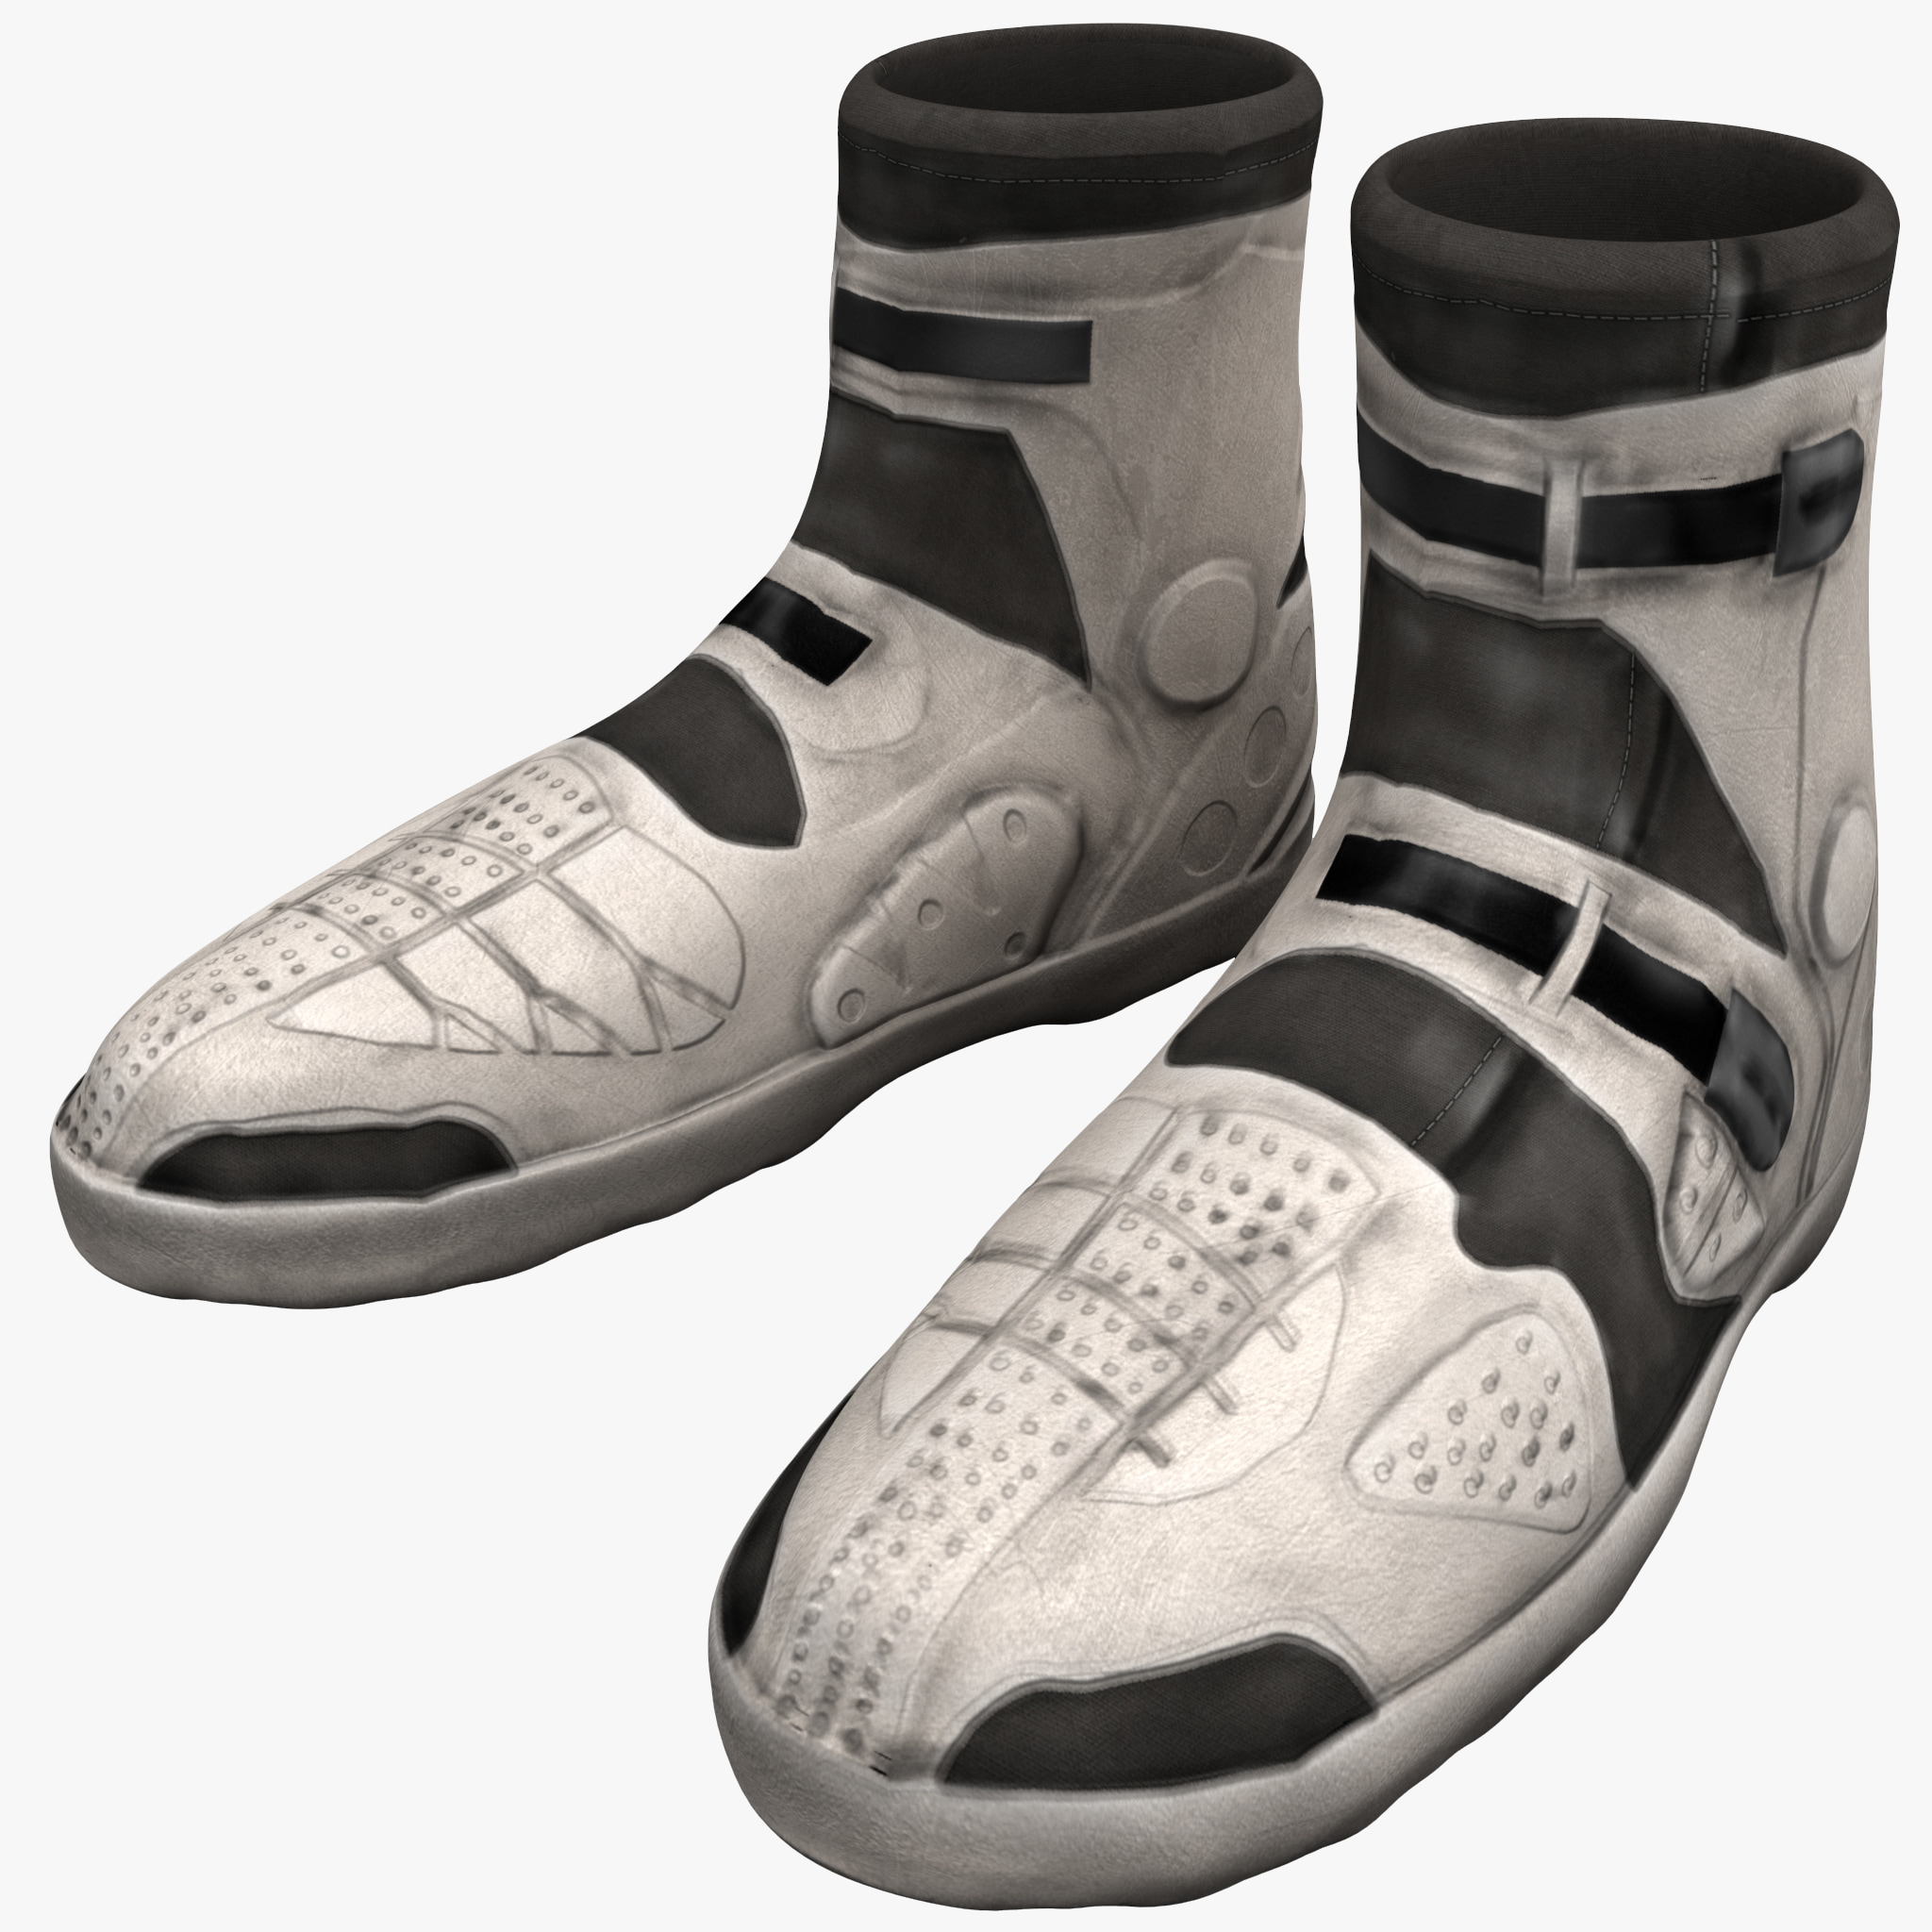 Futuristic Soldier Armored Boots_1.jpg